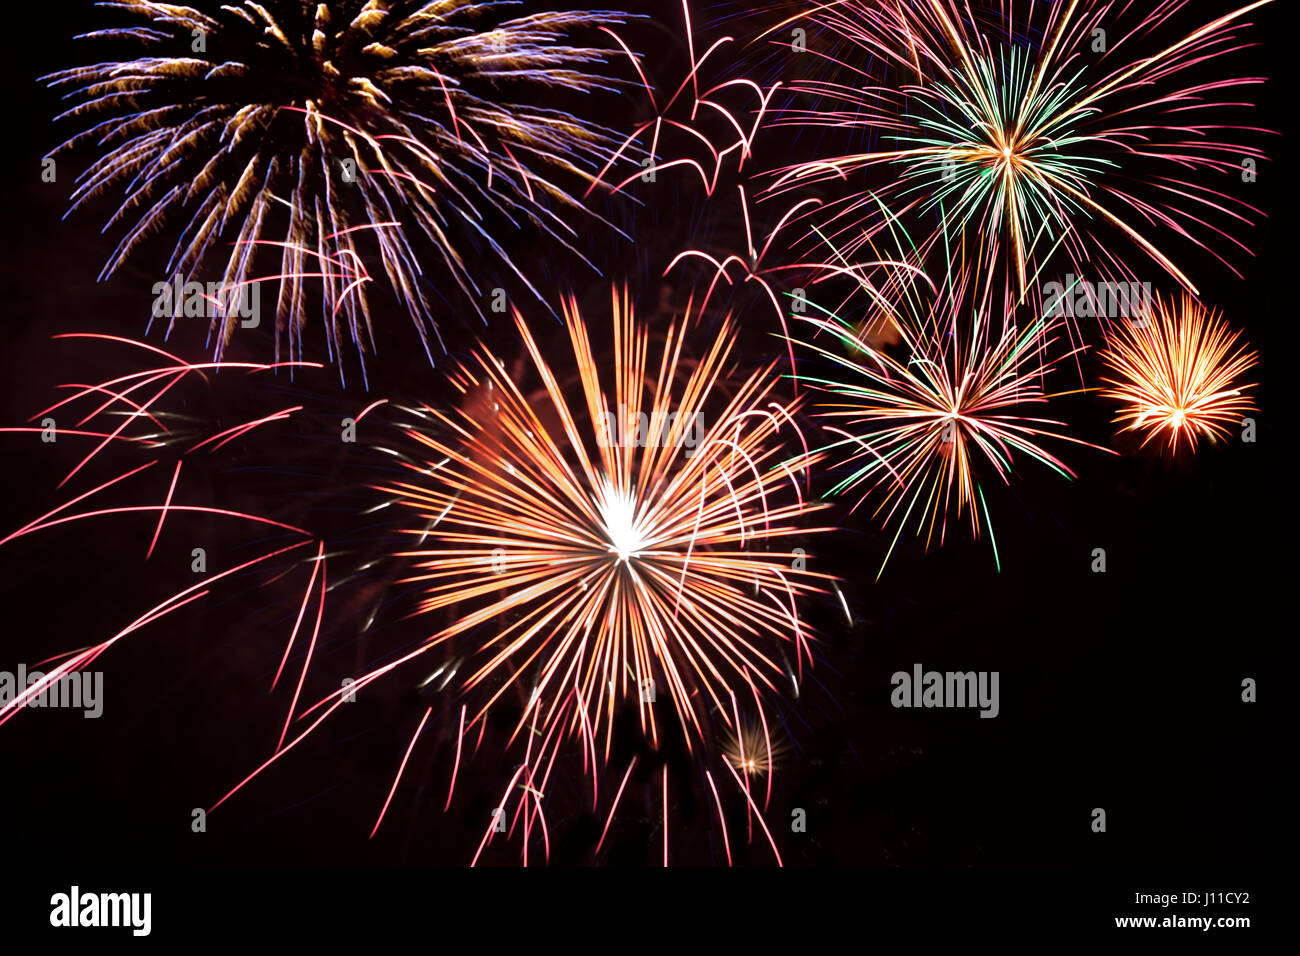 MULTIPLE SMOKELESS FIREWORK BURSTS ON CLEAR BLACK SKY - Stock Image